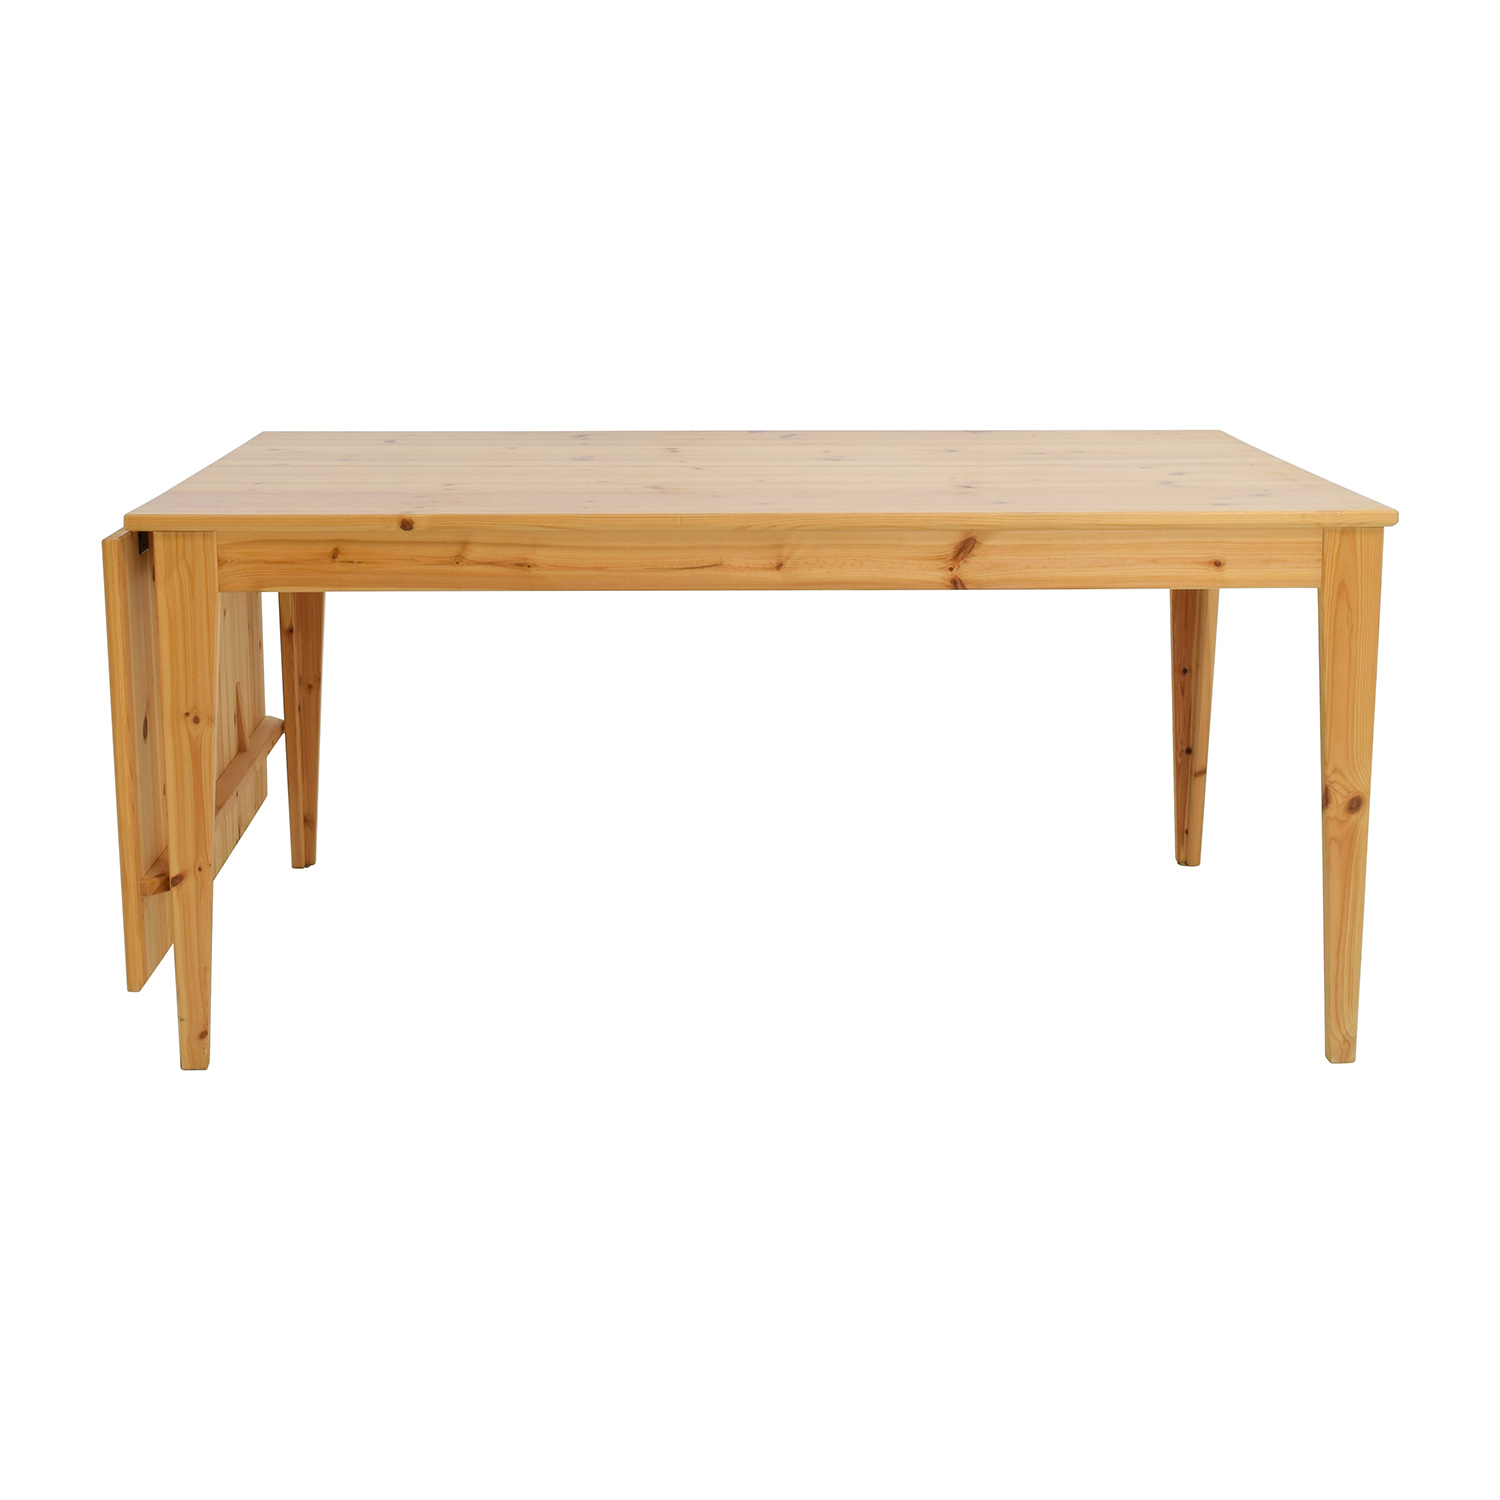 off ikea norma pine wood drop leaf table tables normas accent dinner pier one bedding reclaimed barn door target teal cabinet furniture auckland white trunk coffee end under